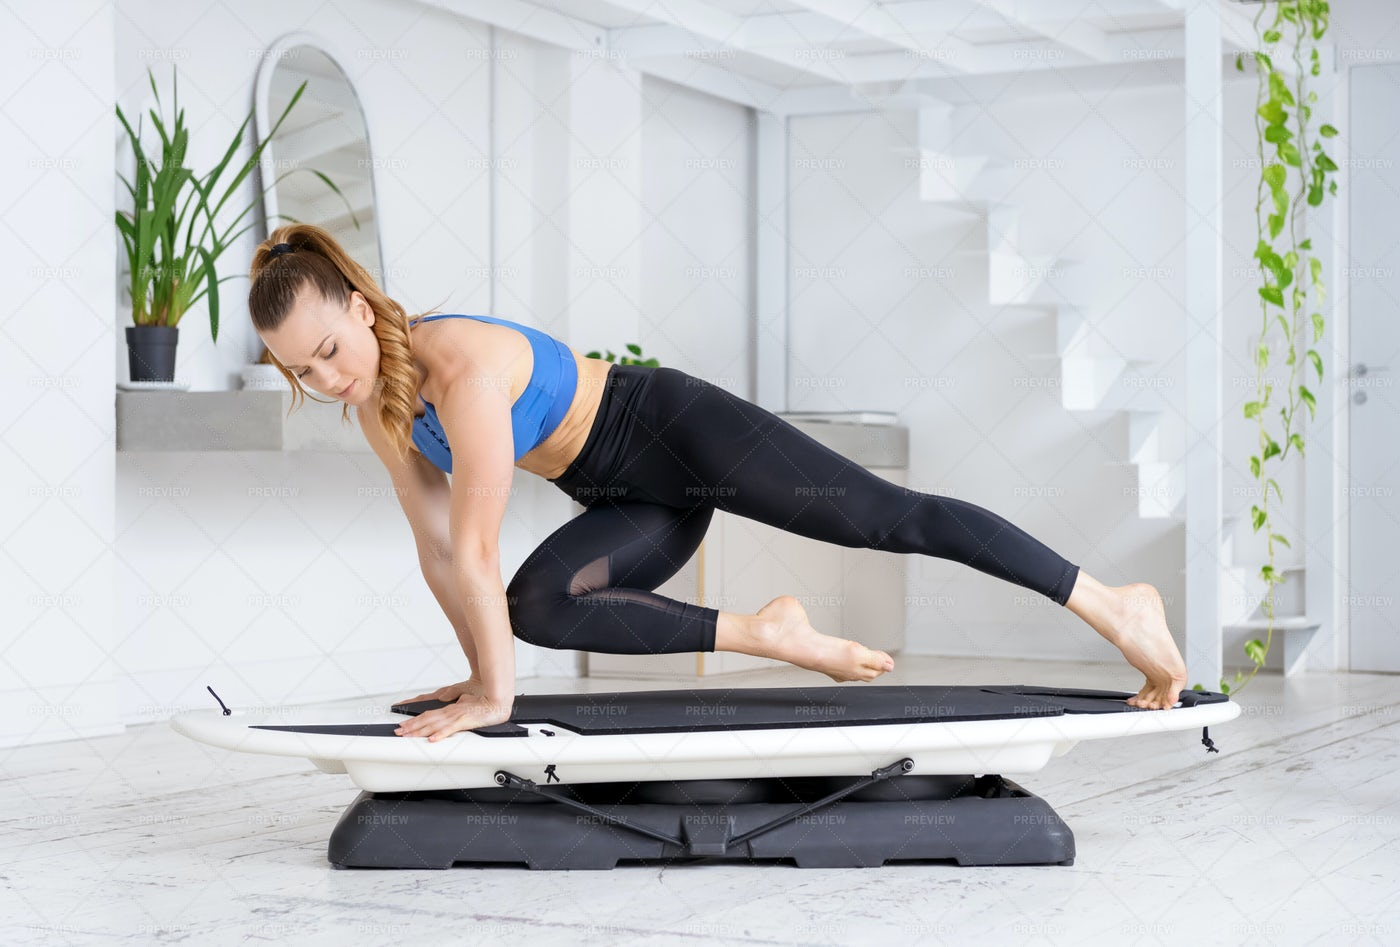 Athlete Doing A High Plank Cross Spider: Stock Photos